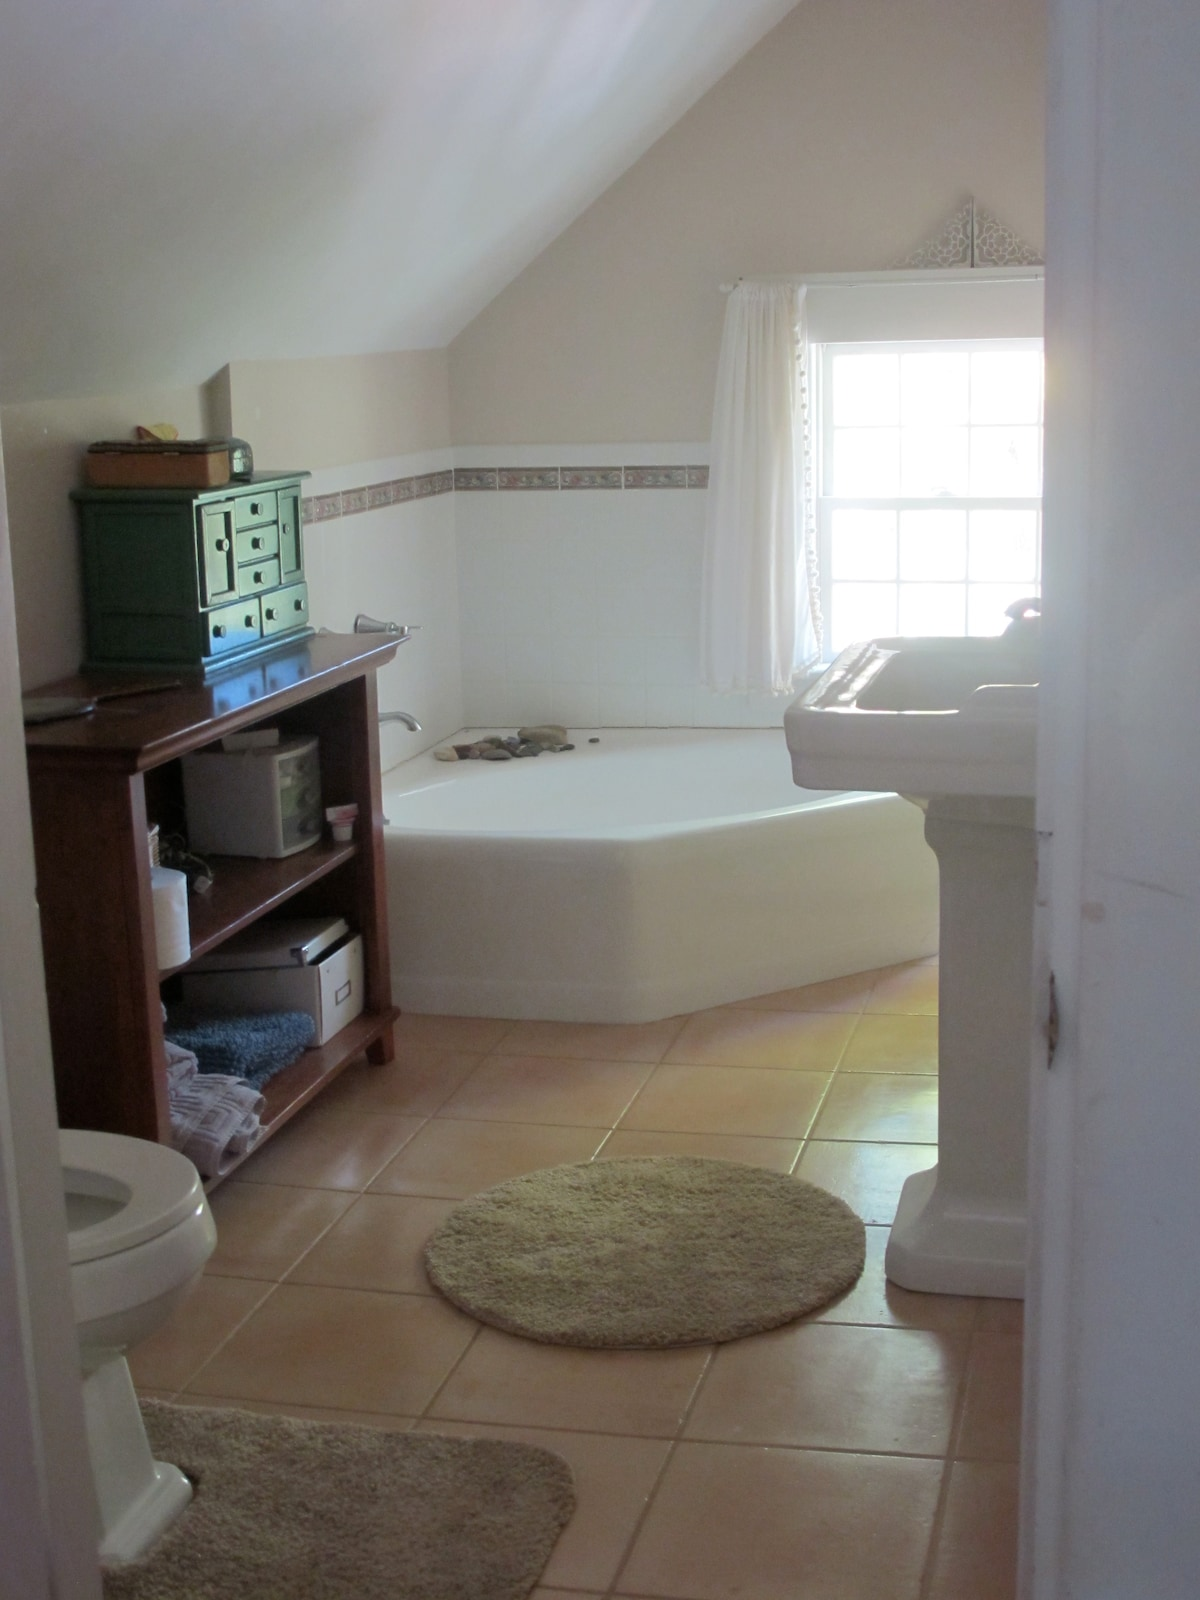 One of the shared bathrooms